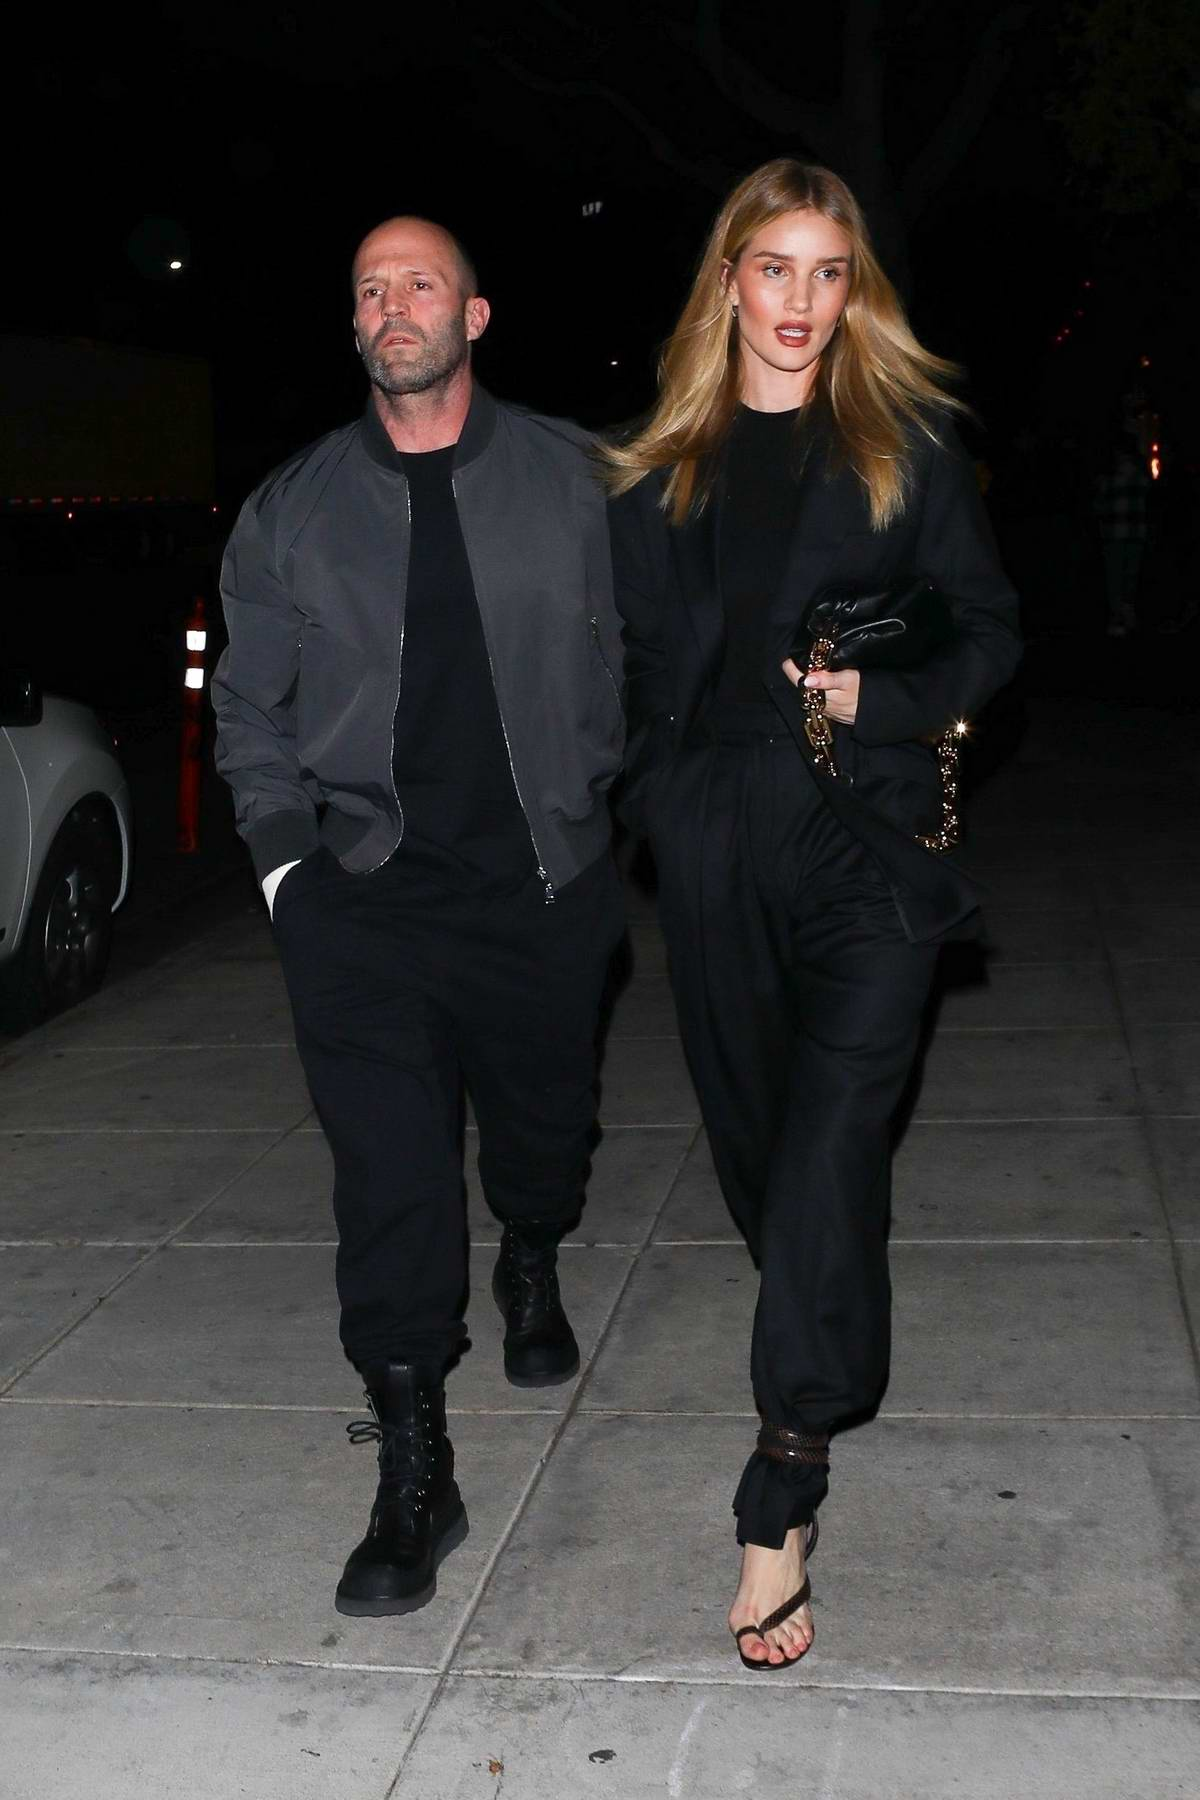 Rosie Huntington-Whiteley and Jason Statham arrive for a late date-night dinner at Matsuhisa in Beverly Hills, California